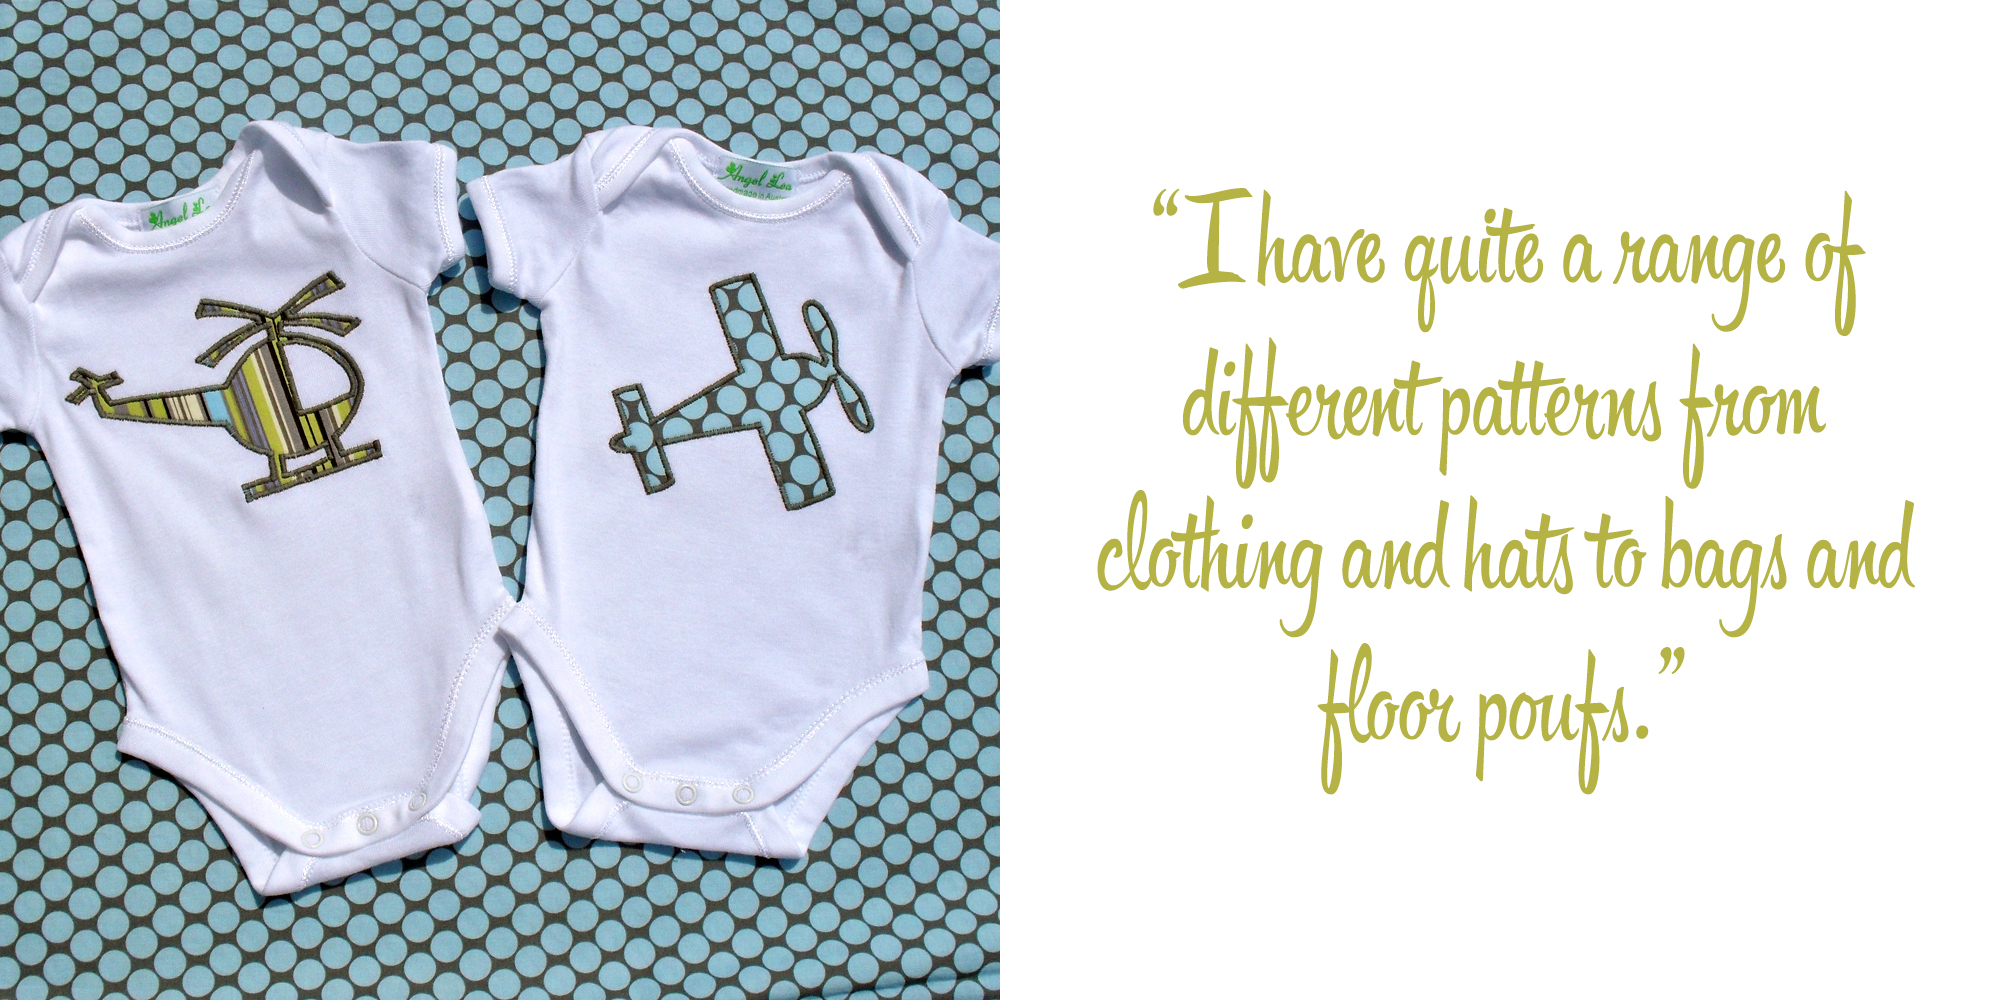 Helicopter and Aeroplane Applique Designs on Onesies: 'I have quite a range of different patterns from clothing and hats to bags and floor poufs.'